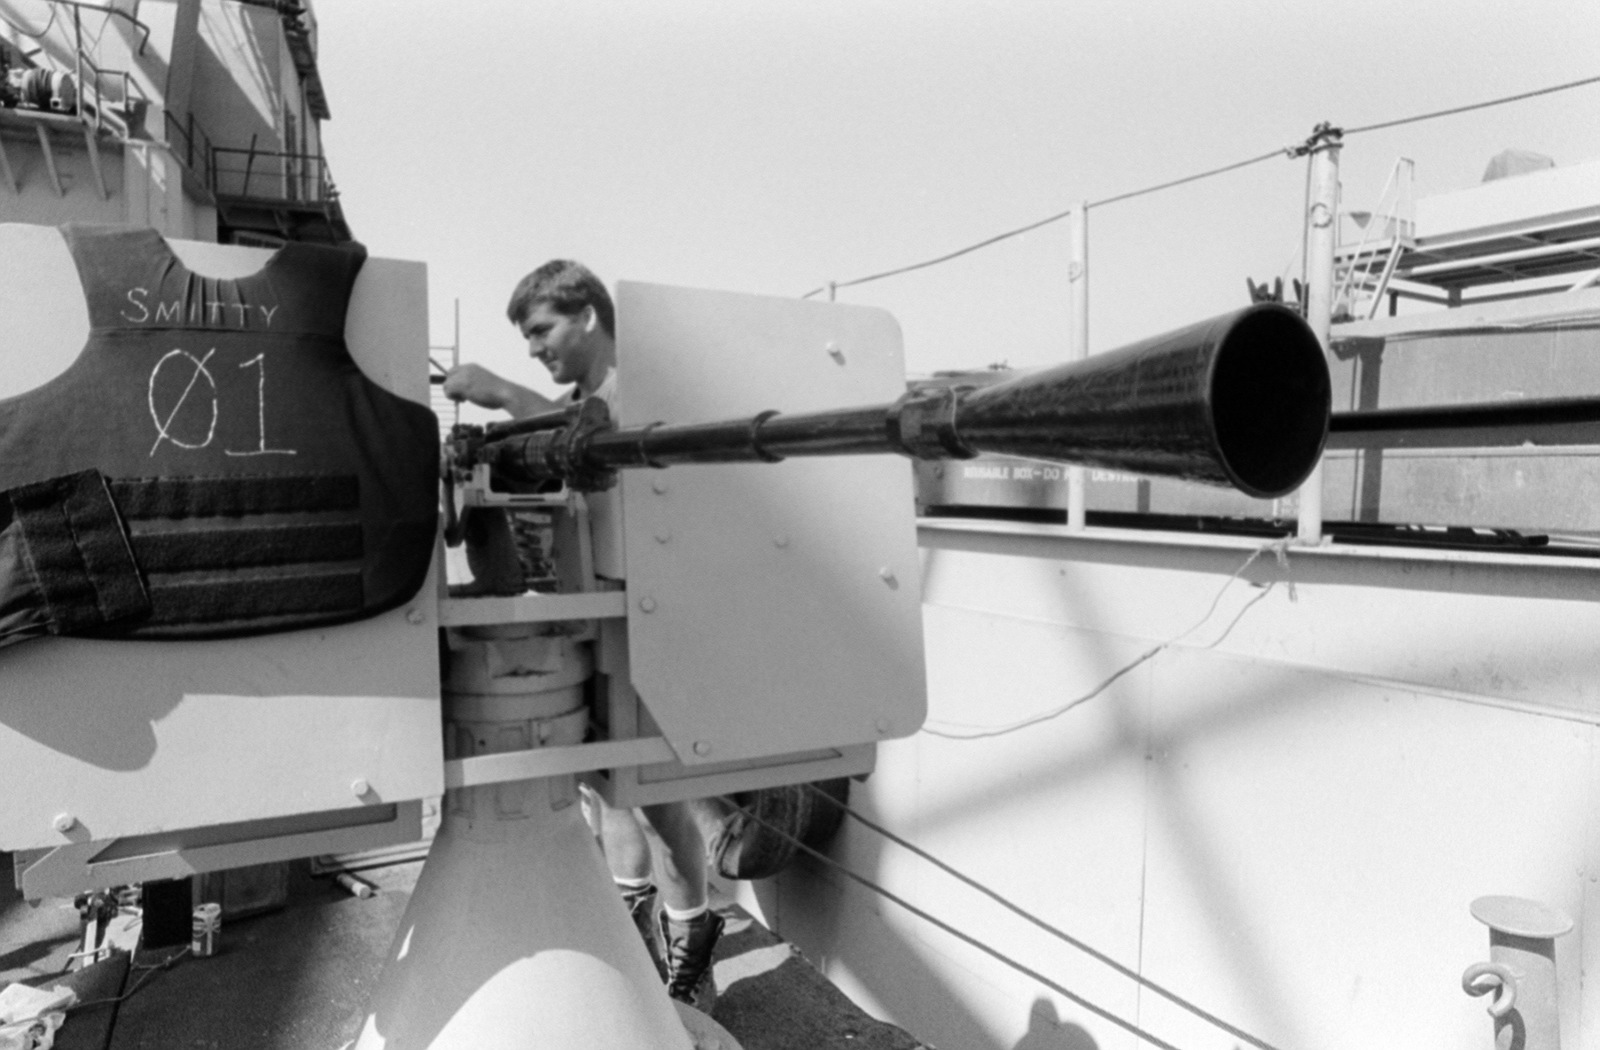 Quartermaster SEAMAN (SN) David Smith cleans a Mark 67 20 mm cannon mounted on the deck of a Special Boat Unit 20 PB Mark III patrol boat in the Persian Gulf